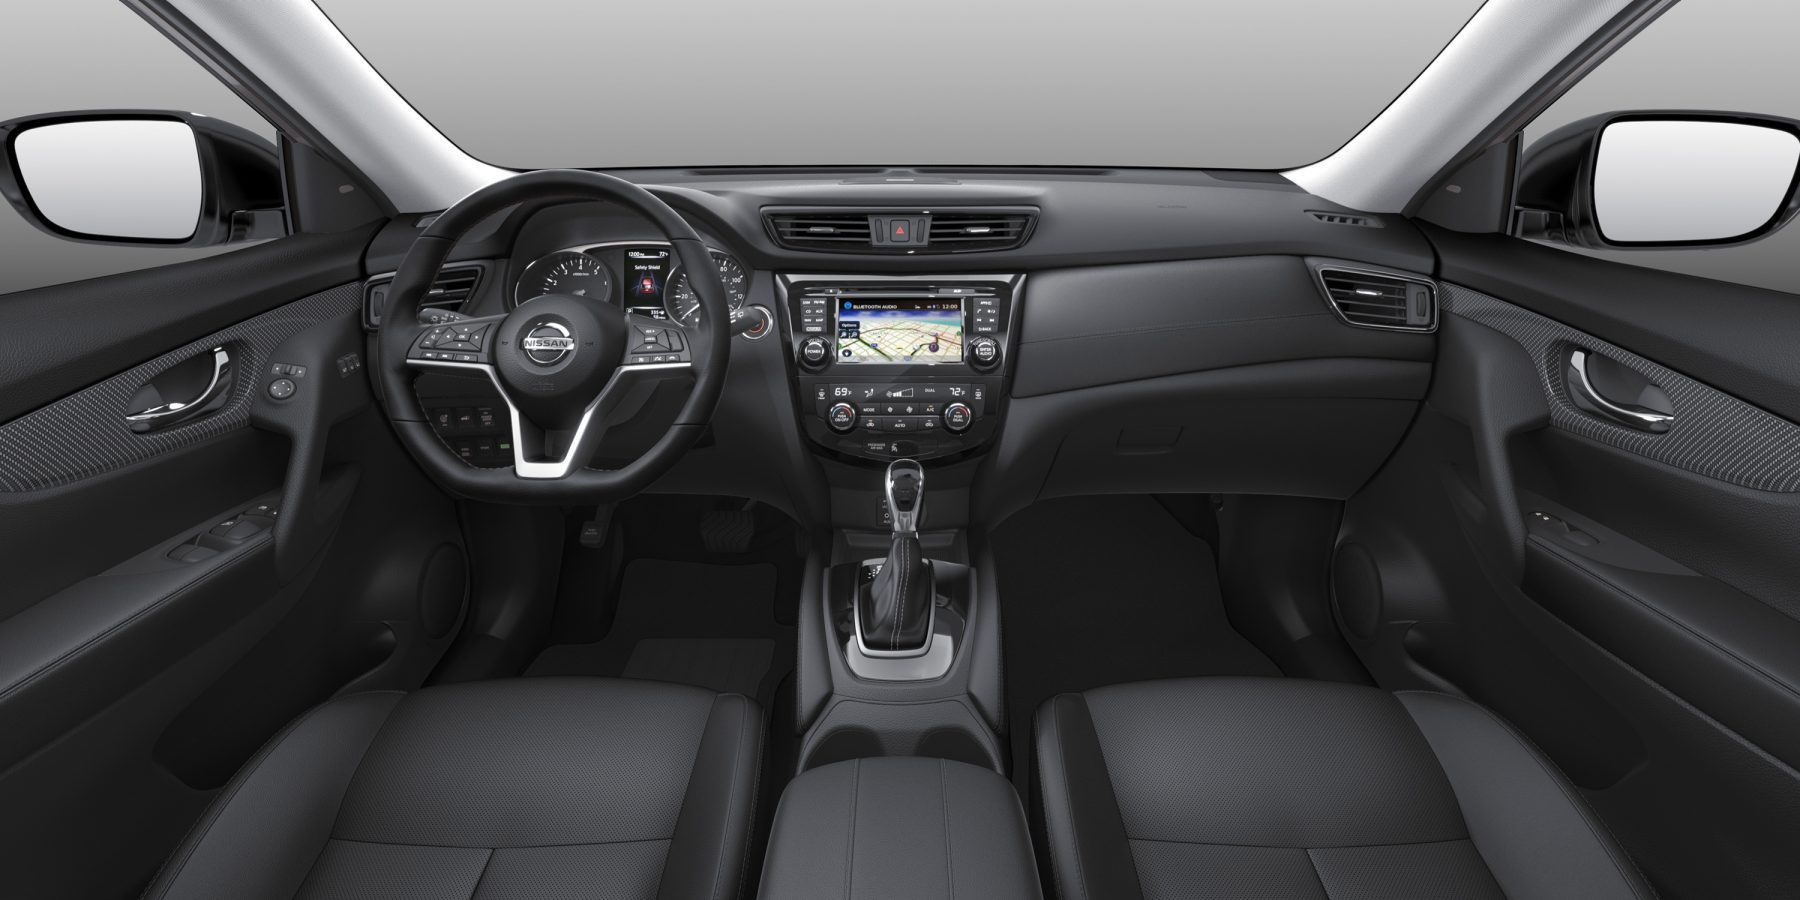 X-Trail large interior shot - black cloth